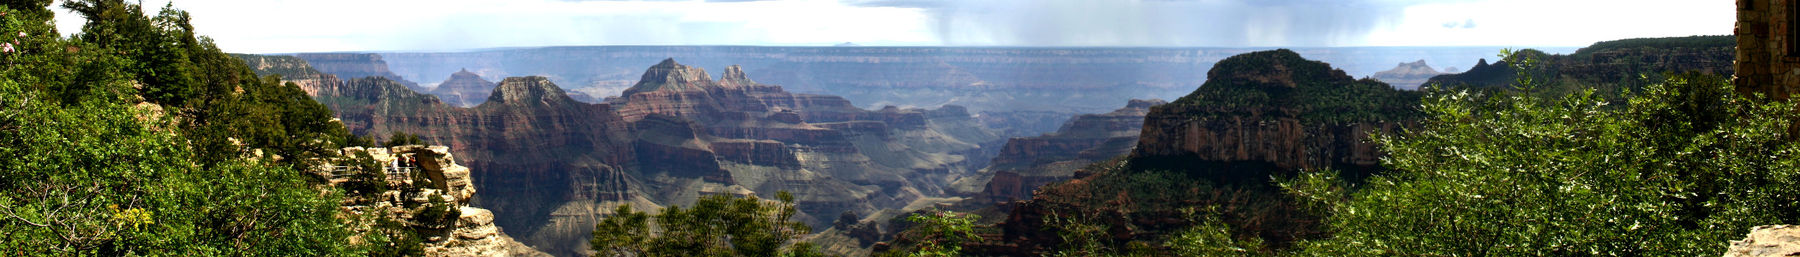 Grand Canyon National Park in Arizona, Verenigde Staten